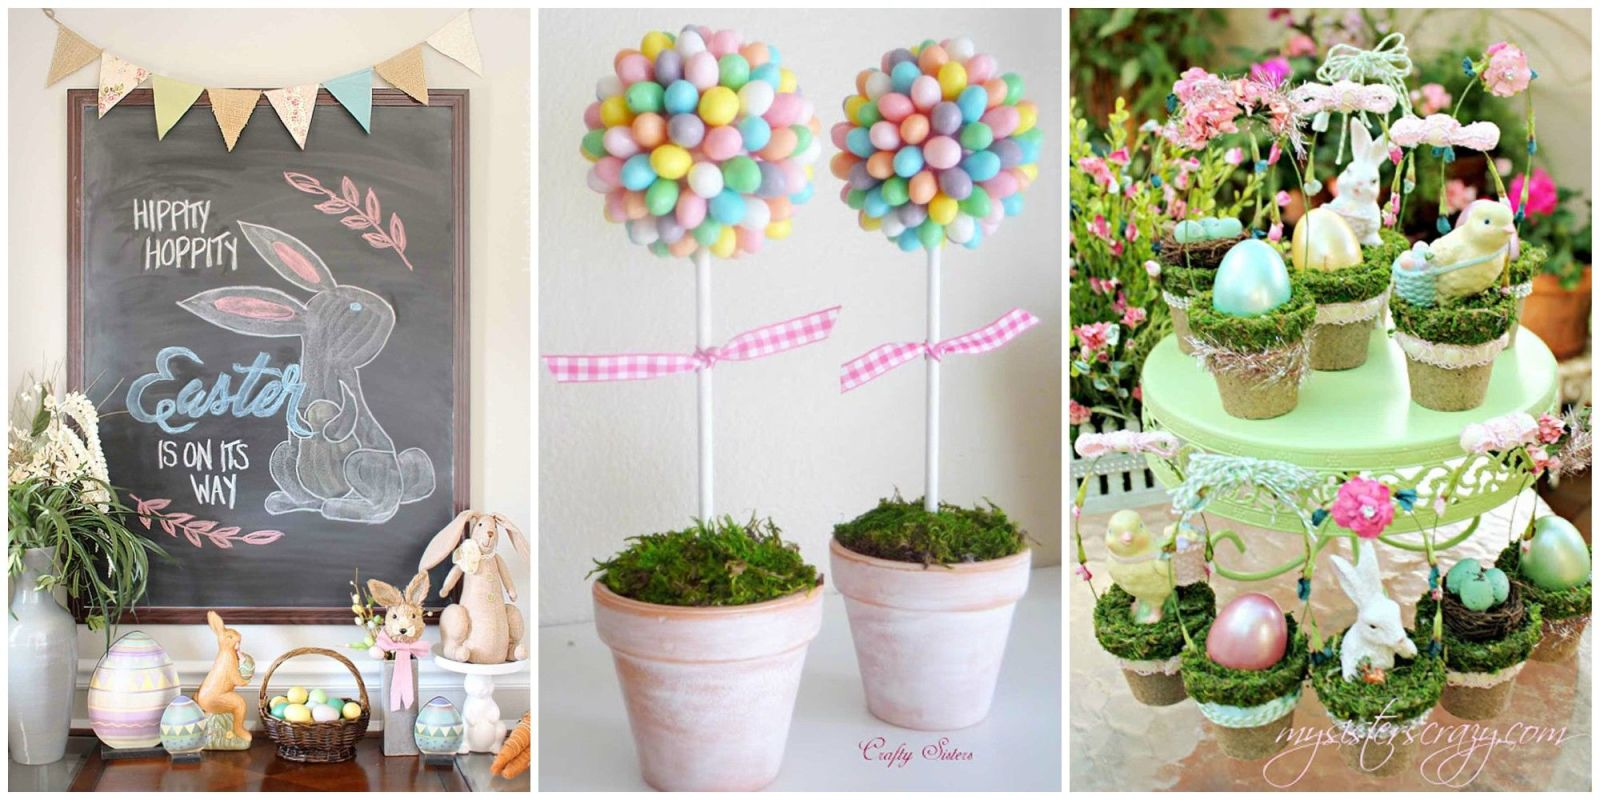 20 diy easter decorations to make homemade easter decorating ideas - Easter Decorating Ideas